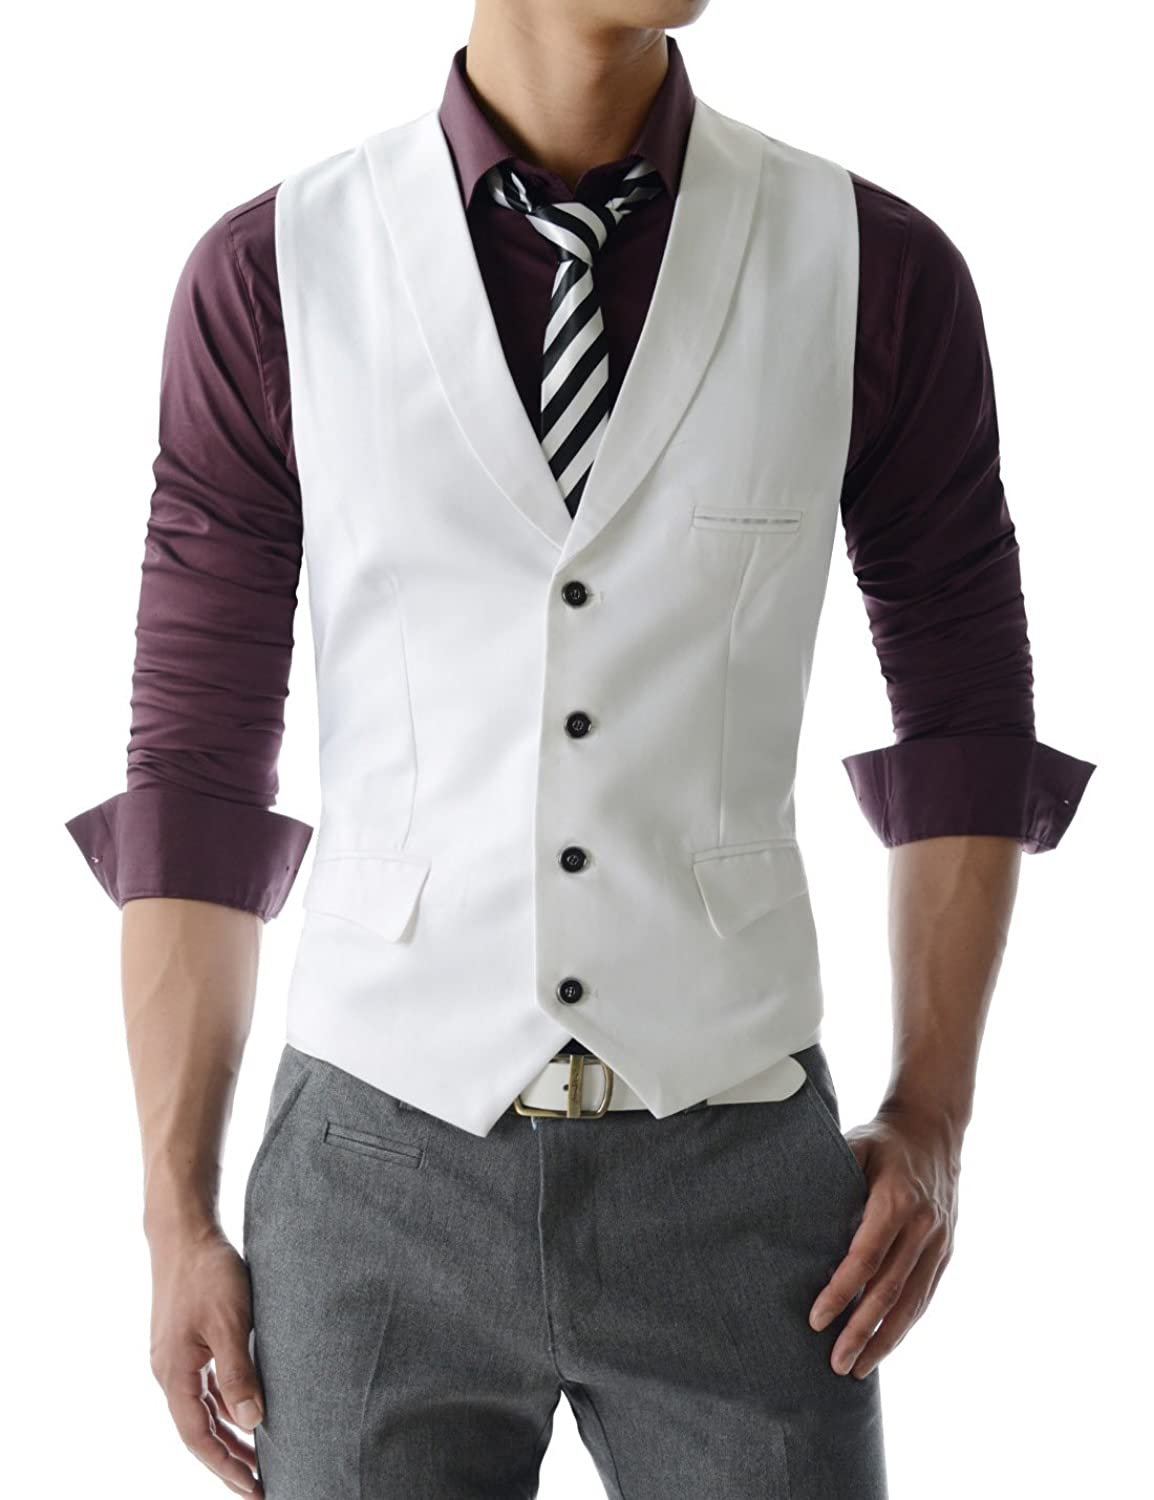 Men's Vintage Vests, Sweater Vests VE34 TheLees Mens premium layered style slim vest waist coat $33.99 AT vintagedancer.com